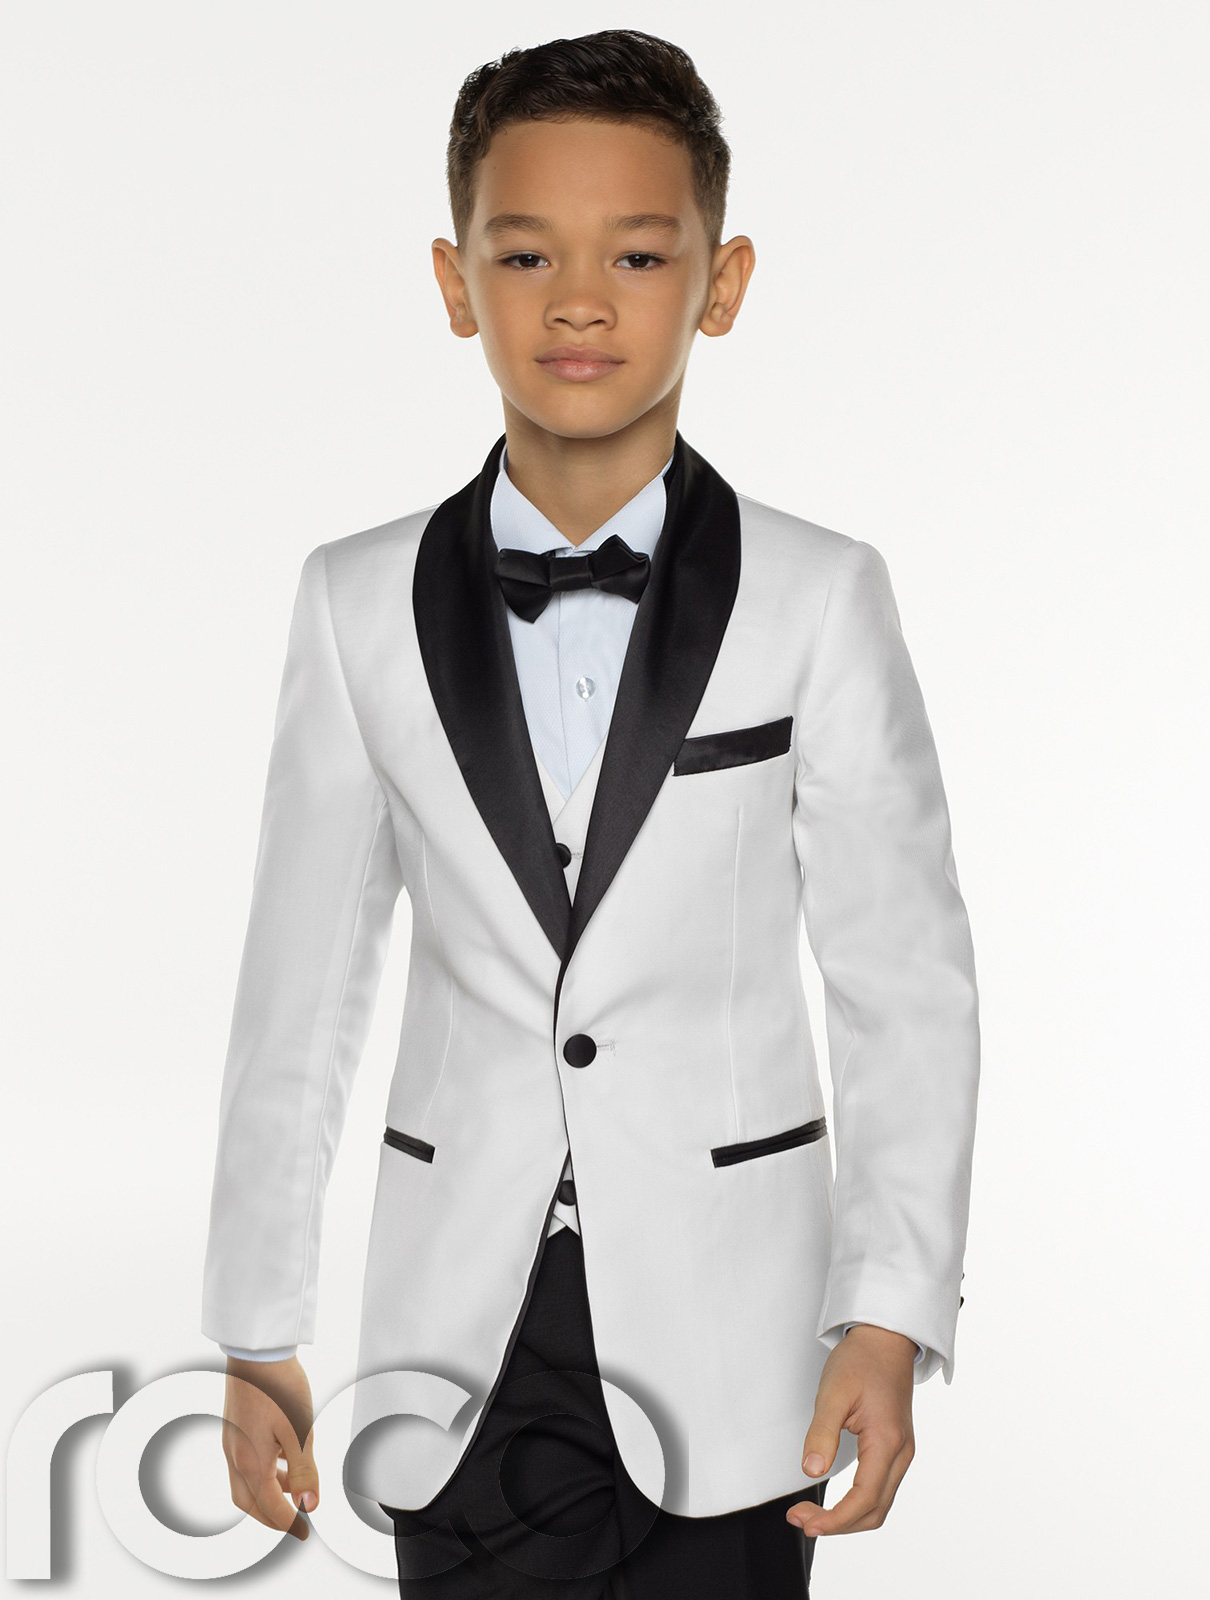 Tuxedo Shirts. Be dressed to the nines with the help of tuxedo shirts. Whether looking for a fitted shirt to wear under a tuxedo or a trendy shirt that will add some funk to an outfit, these tops will pull together any look and give it instant class.